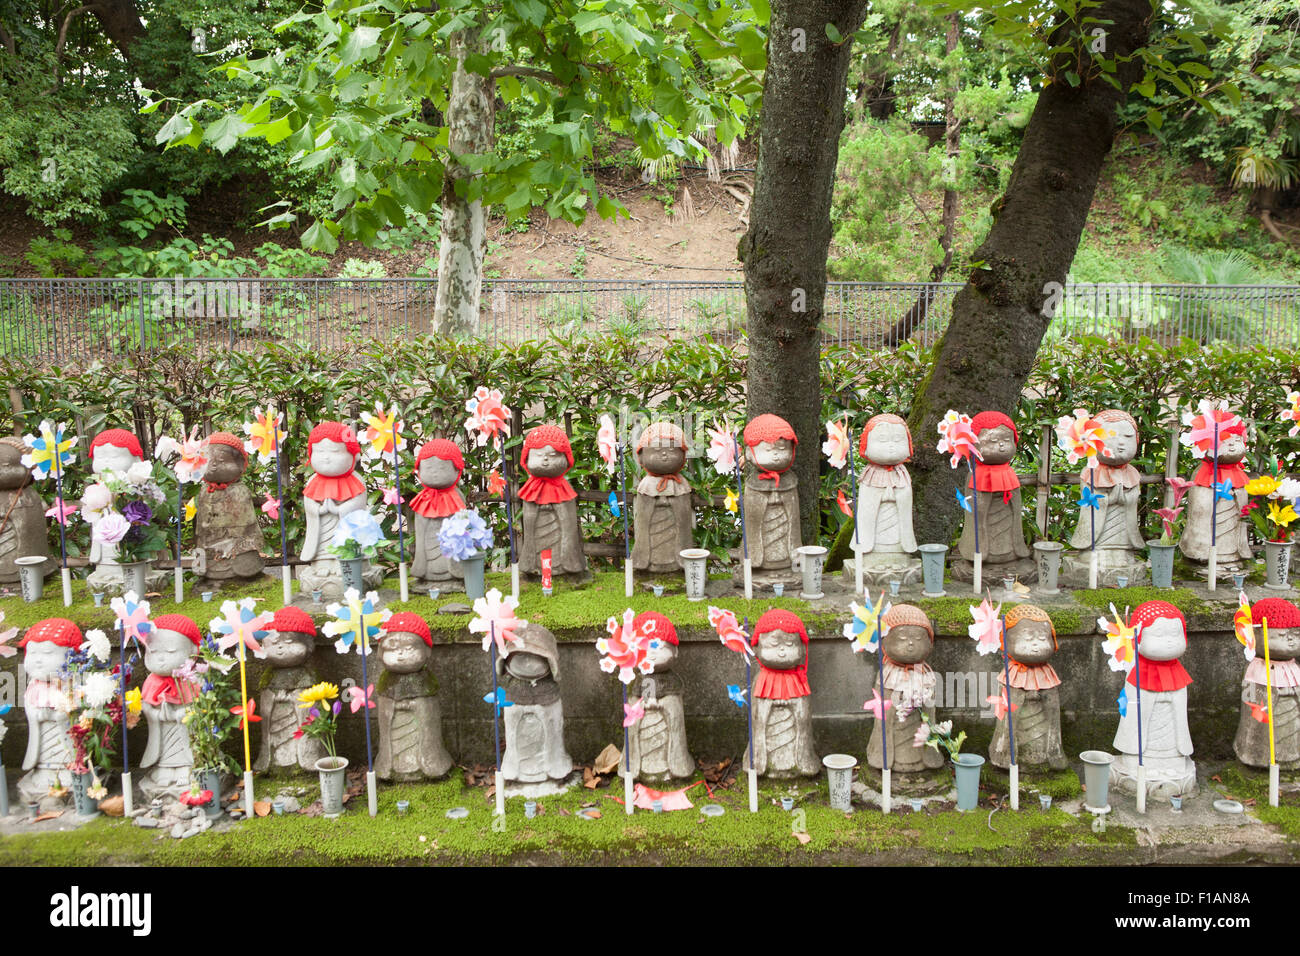 Japan, Tokyo, rows of Jizo statues decorated with bibs, knitted caps, flowers and pinwheels at Zojoji temple - Stock Image